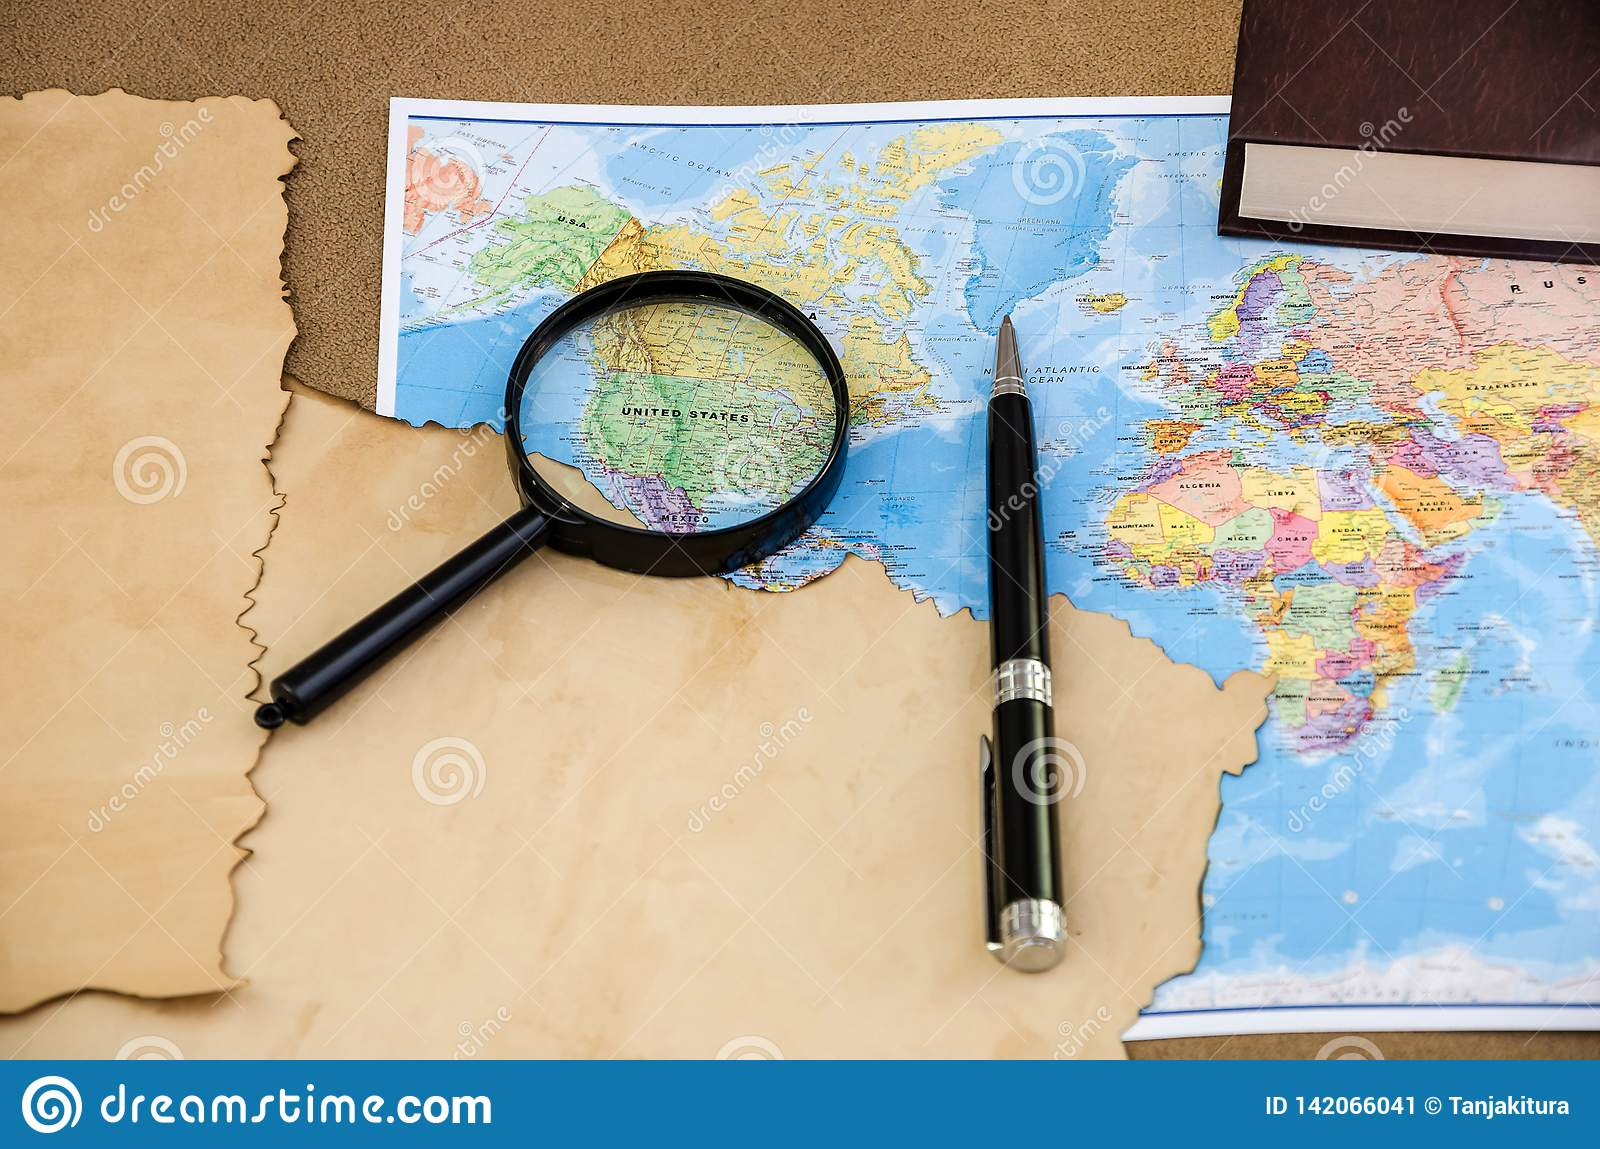 Papyrus on a world map, pen and magnifier